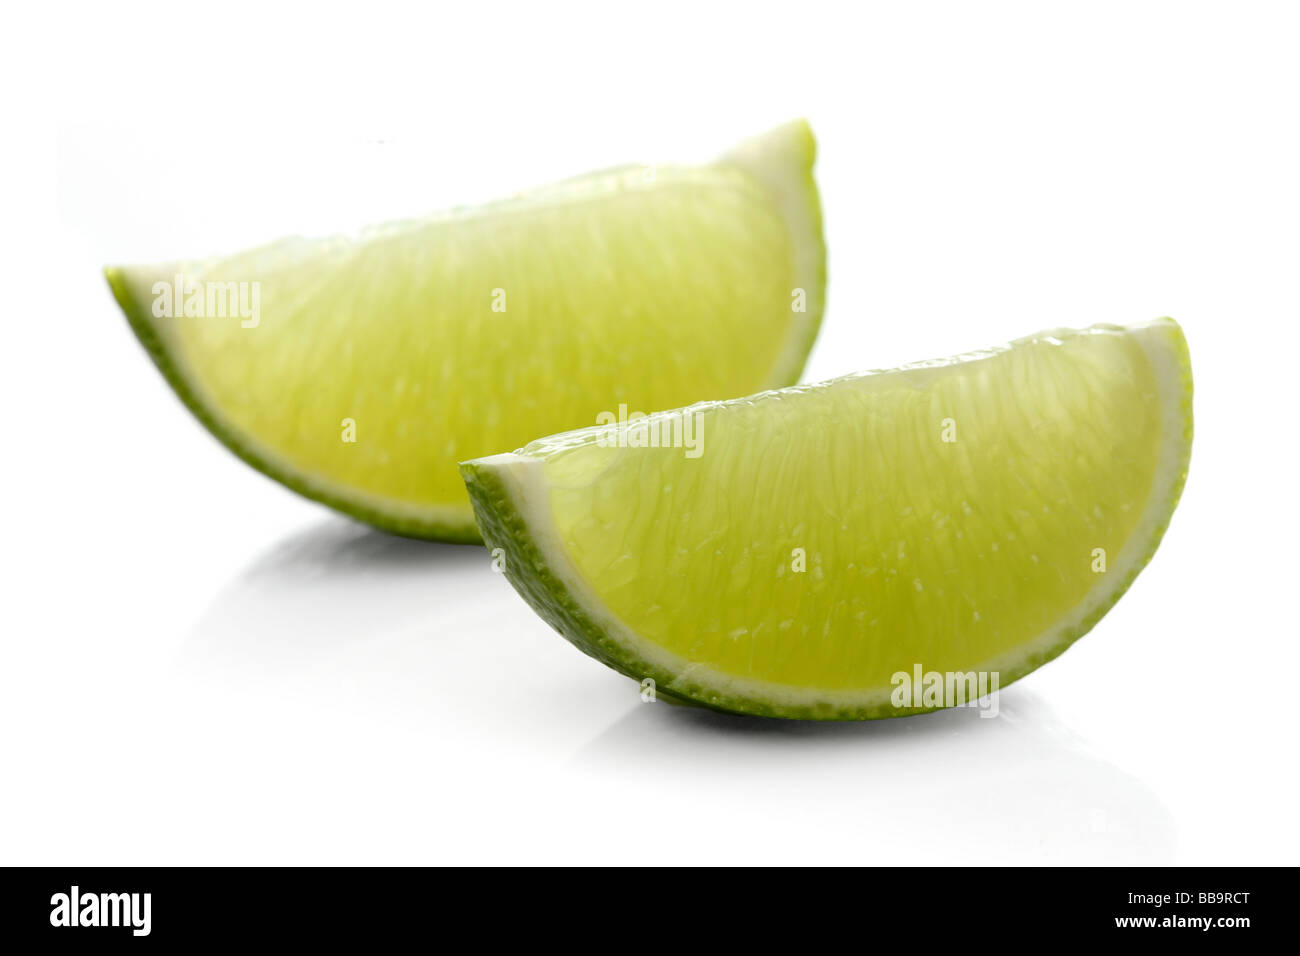 Vert lime aigre douce Photo Stock